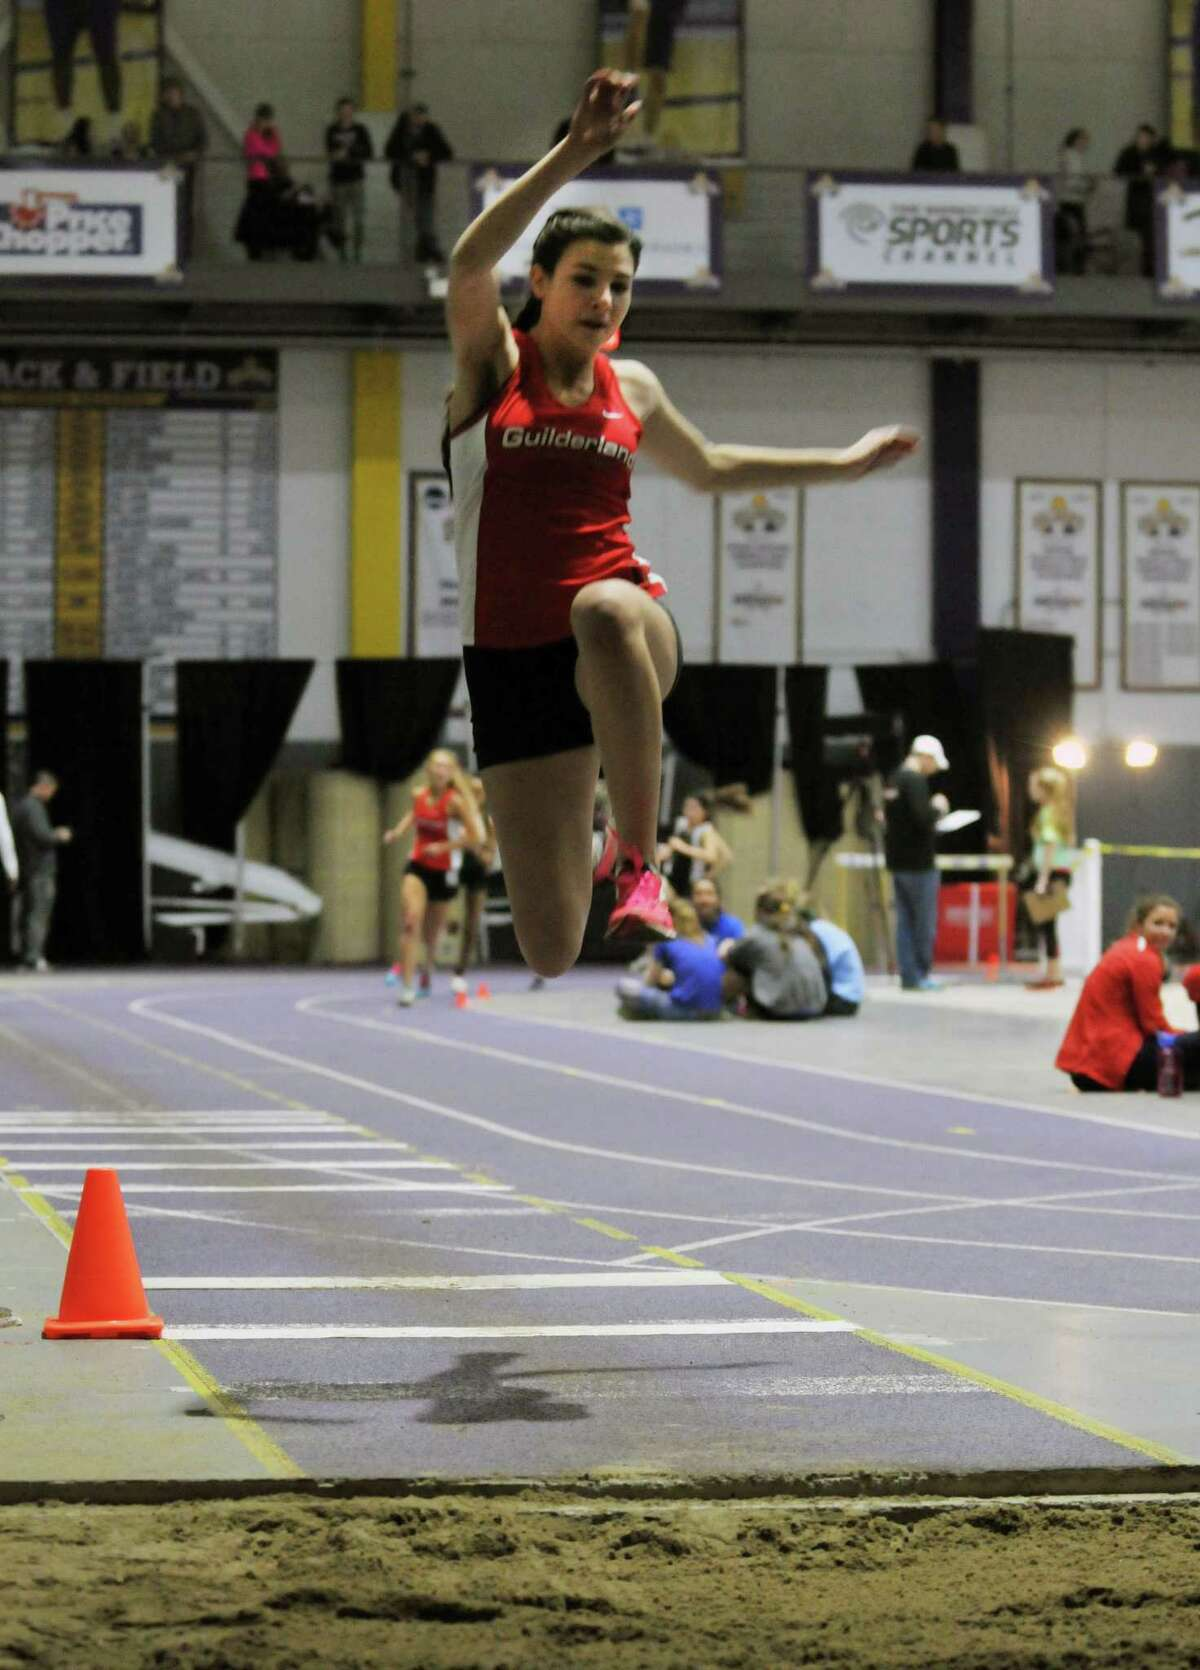 Bella Bruno of Guilderland High School leaps into first place with her 16-foot 9 1/2-inch jump in the girl's long jump during the Section II Division I championships for high school track in the SEFCU Arena on Friday, Feb. 19, 2016, in Albany, N.Y. (Brittany Gregory / Special to the Times Union)